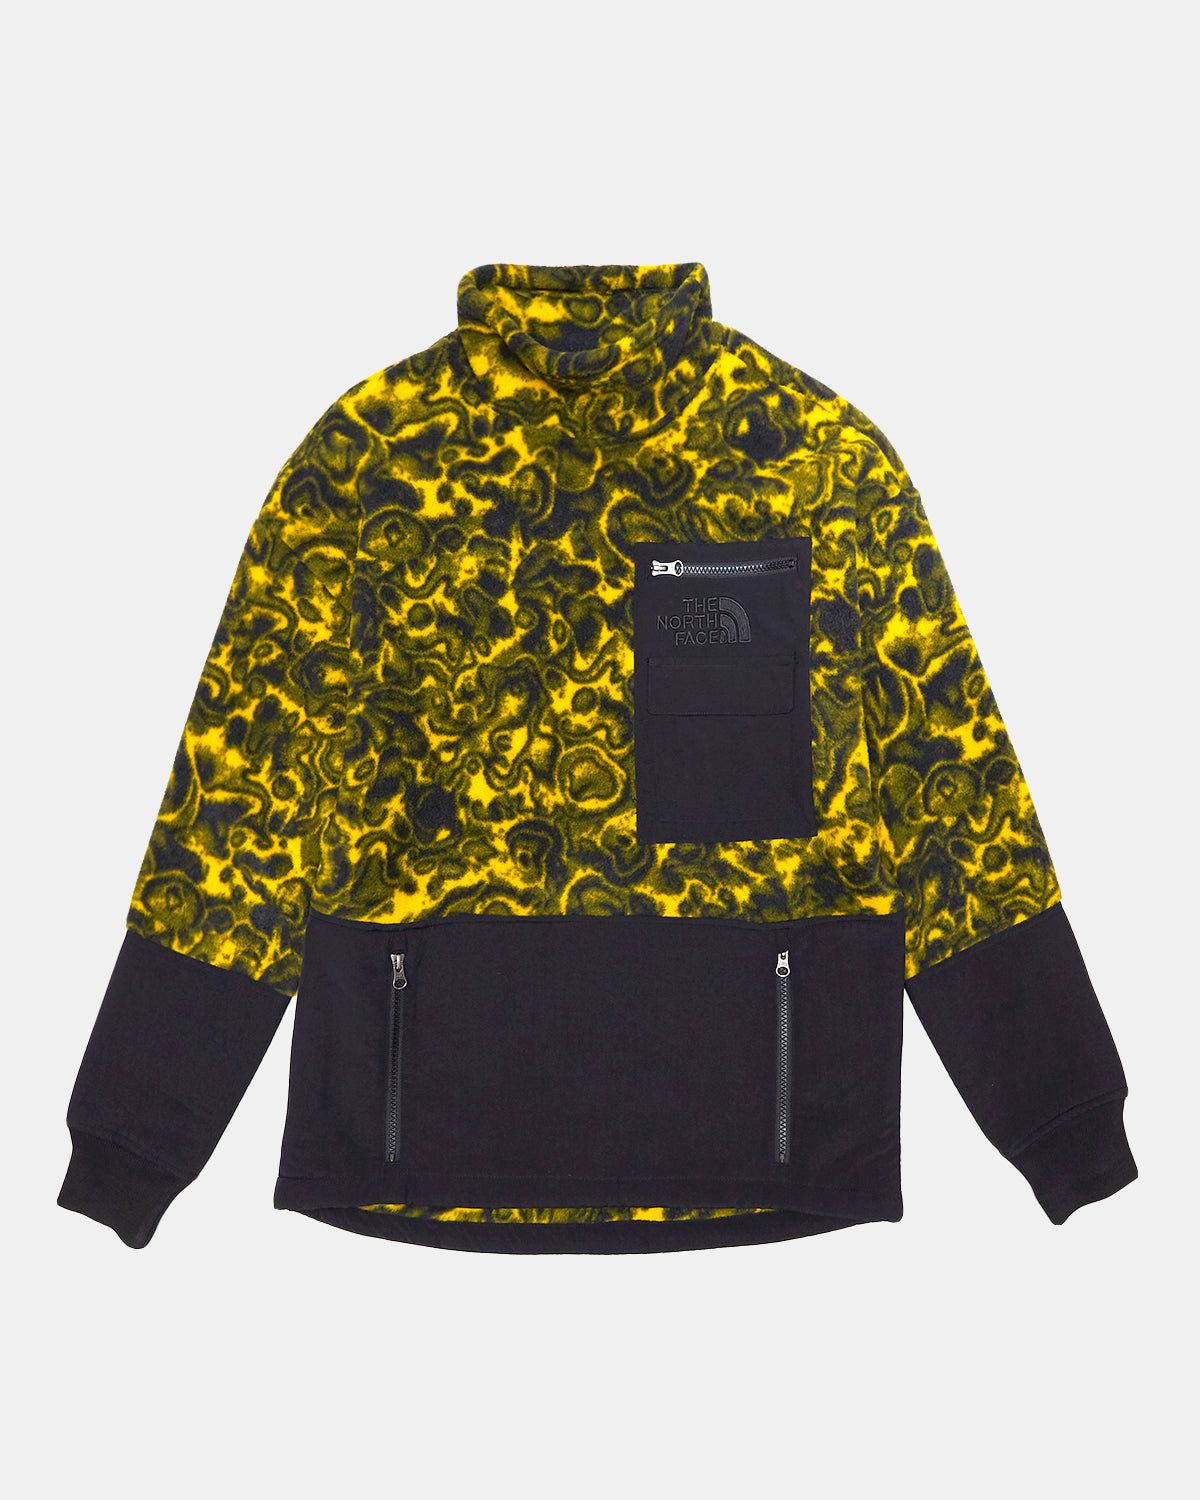 The North Face - '94 Rage Classic Fleece Pullover (Leopard Yellow | 1994 Rage Fleece Print)